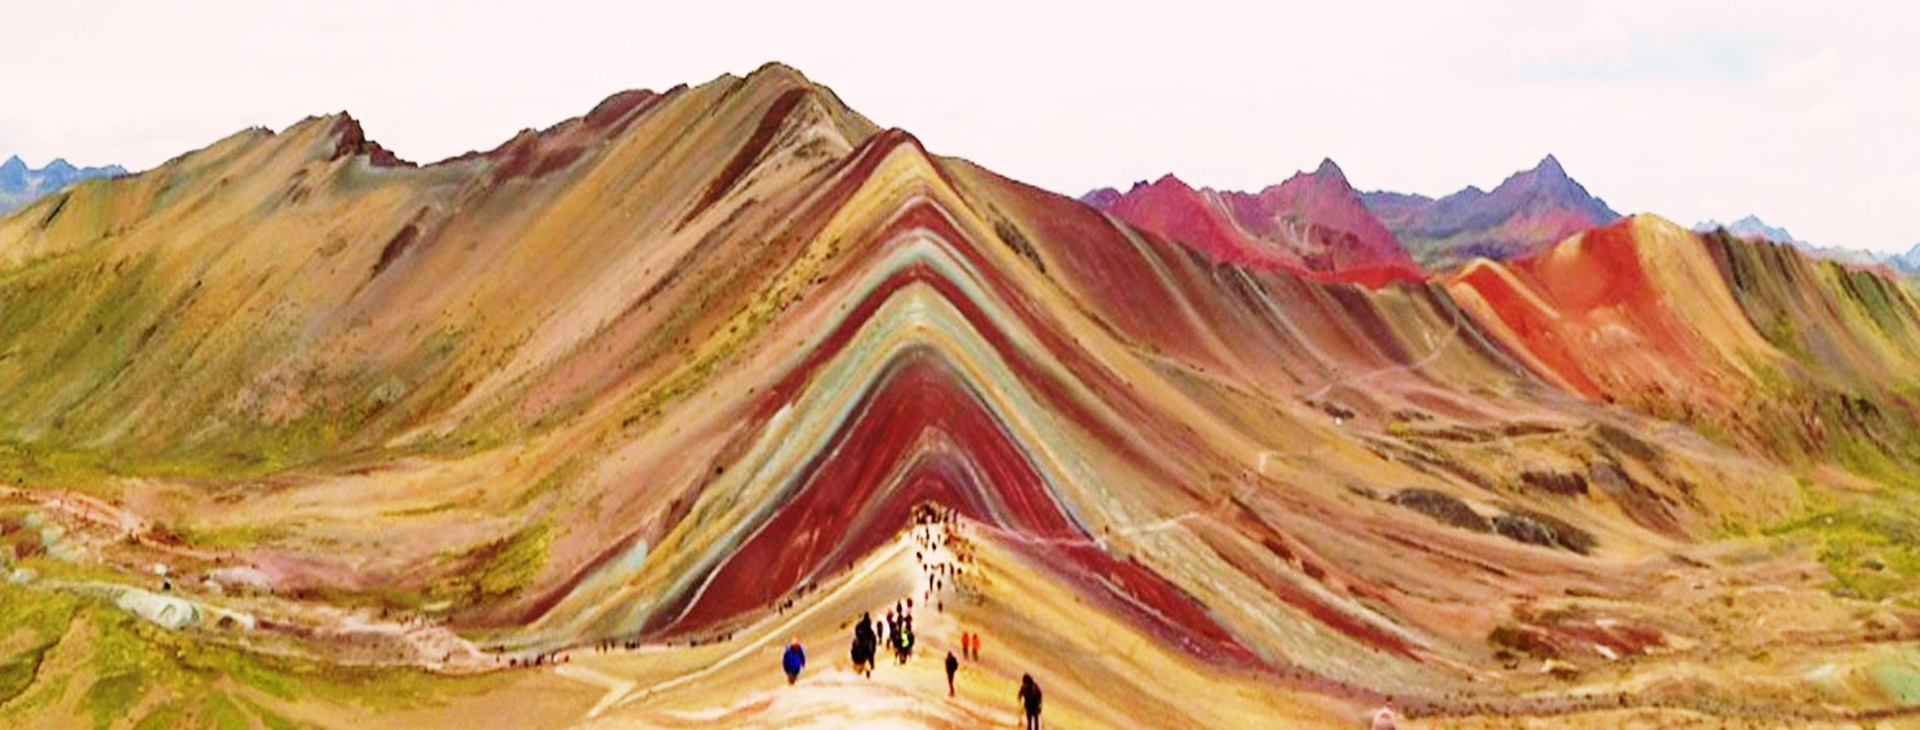 Ausangate Mountain 7 colors 1 day - TOURS PERU MACHU PICCHU